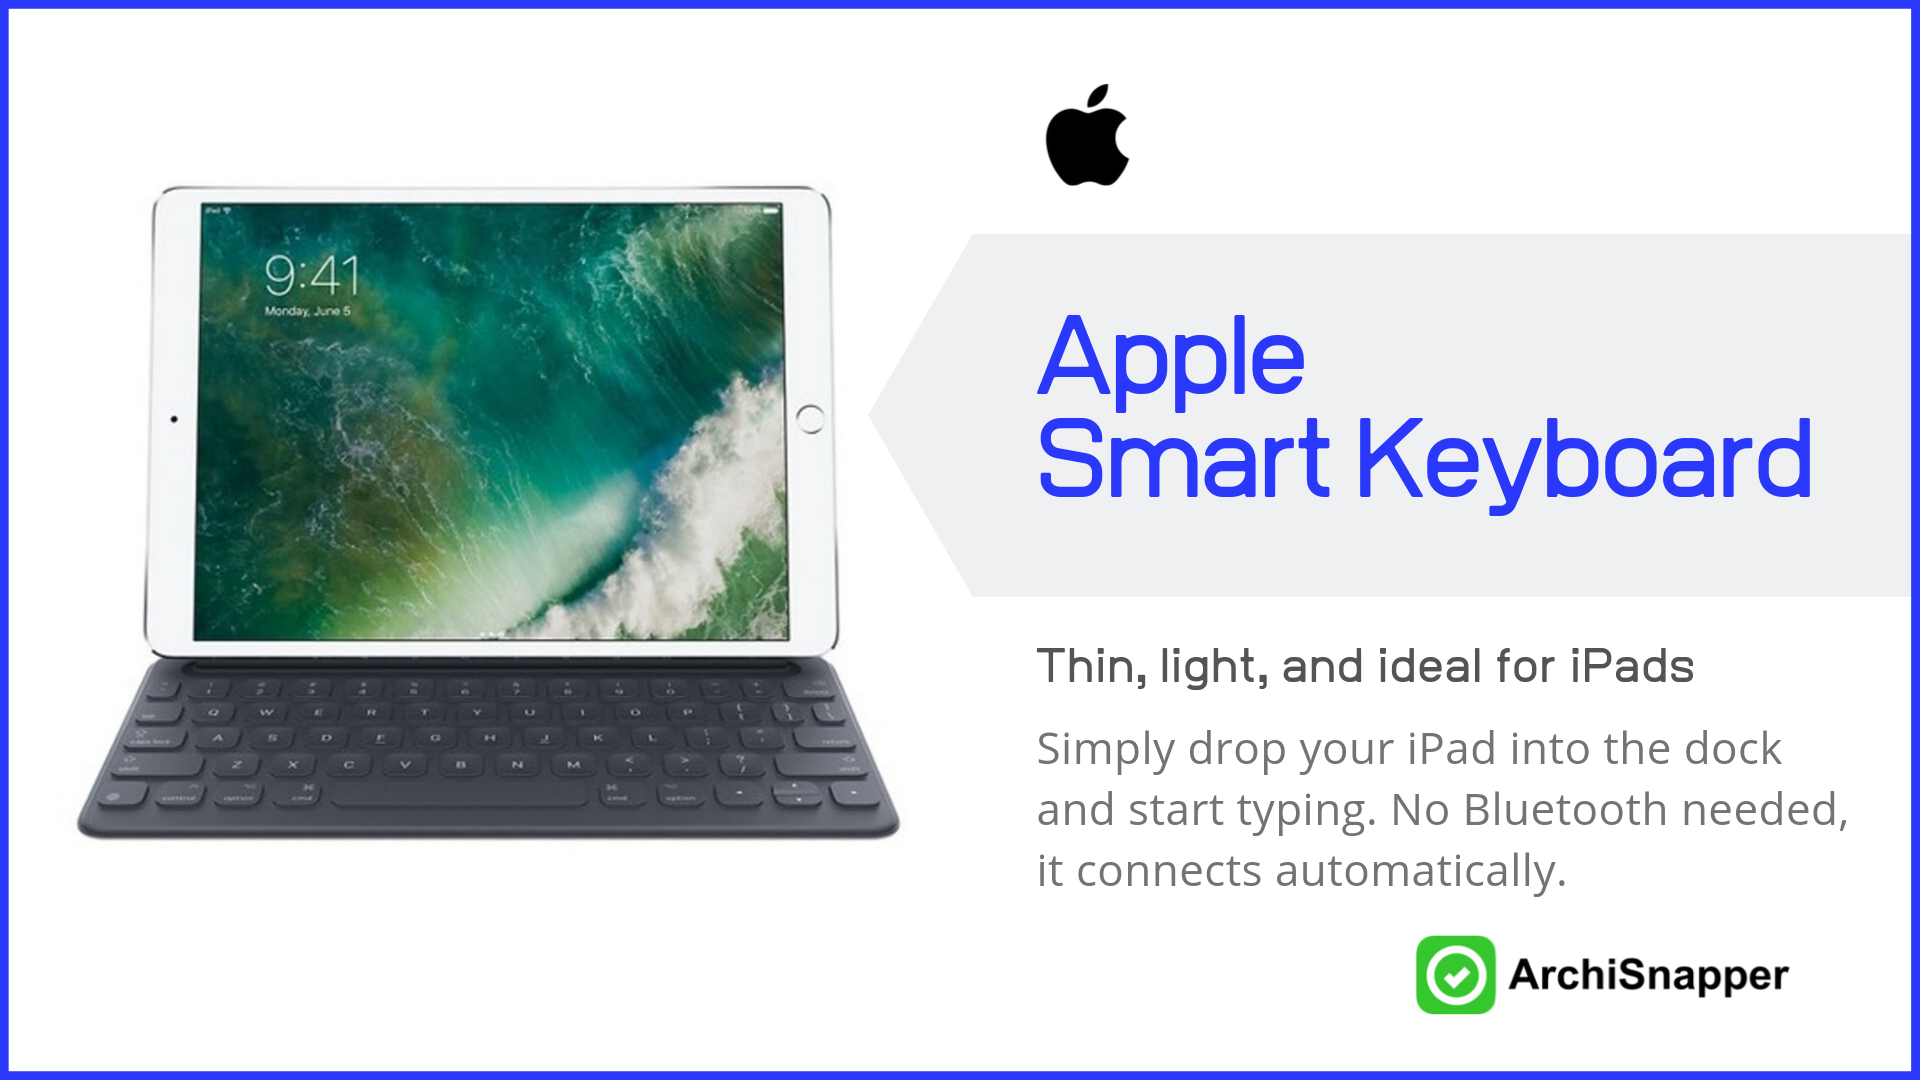 Apple Smart Keyboard | Top Tech for Architects Presented by Archisnapper.